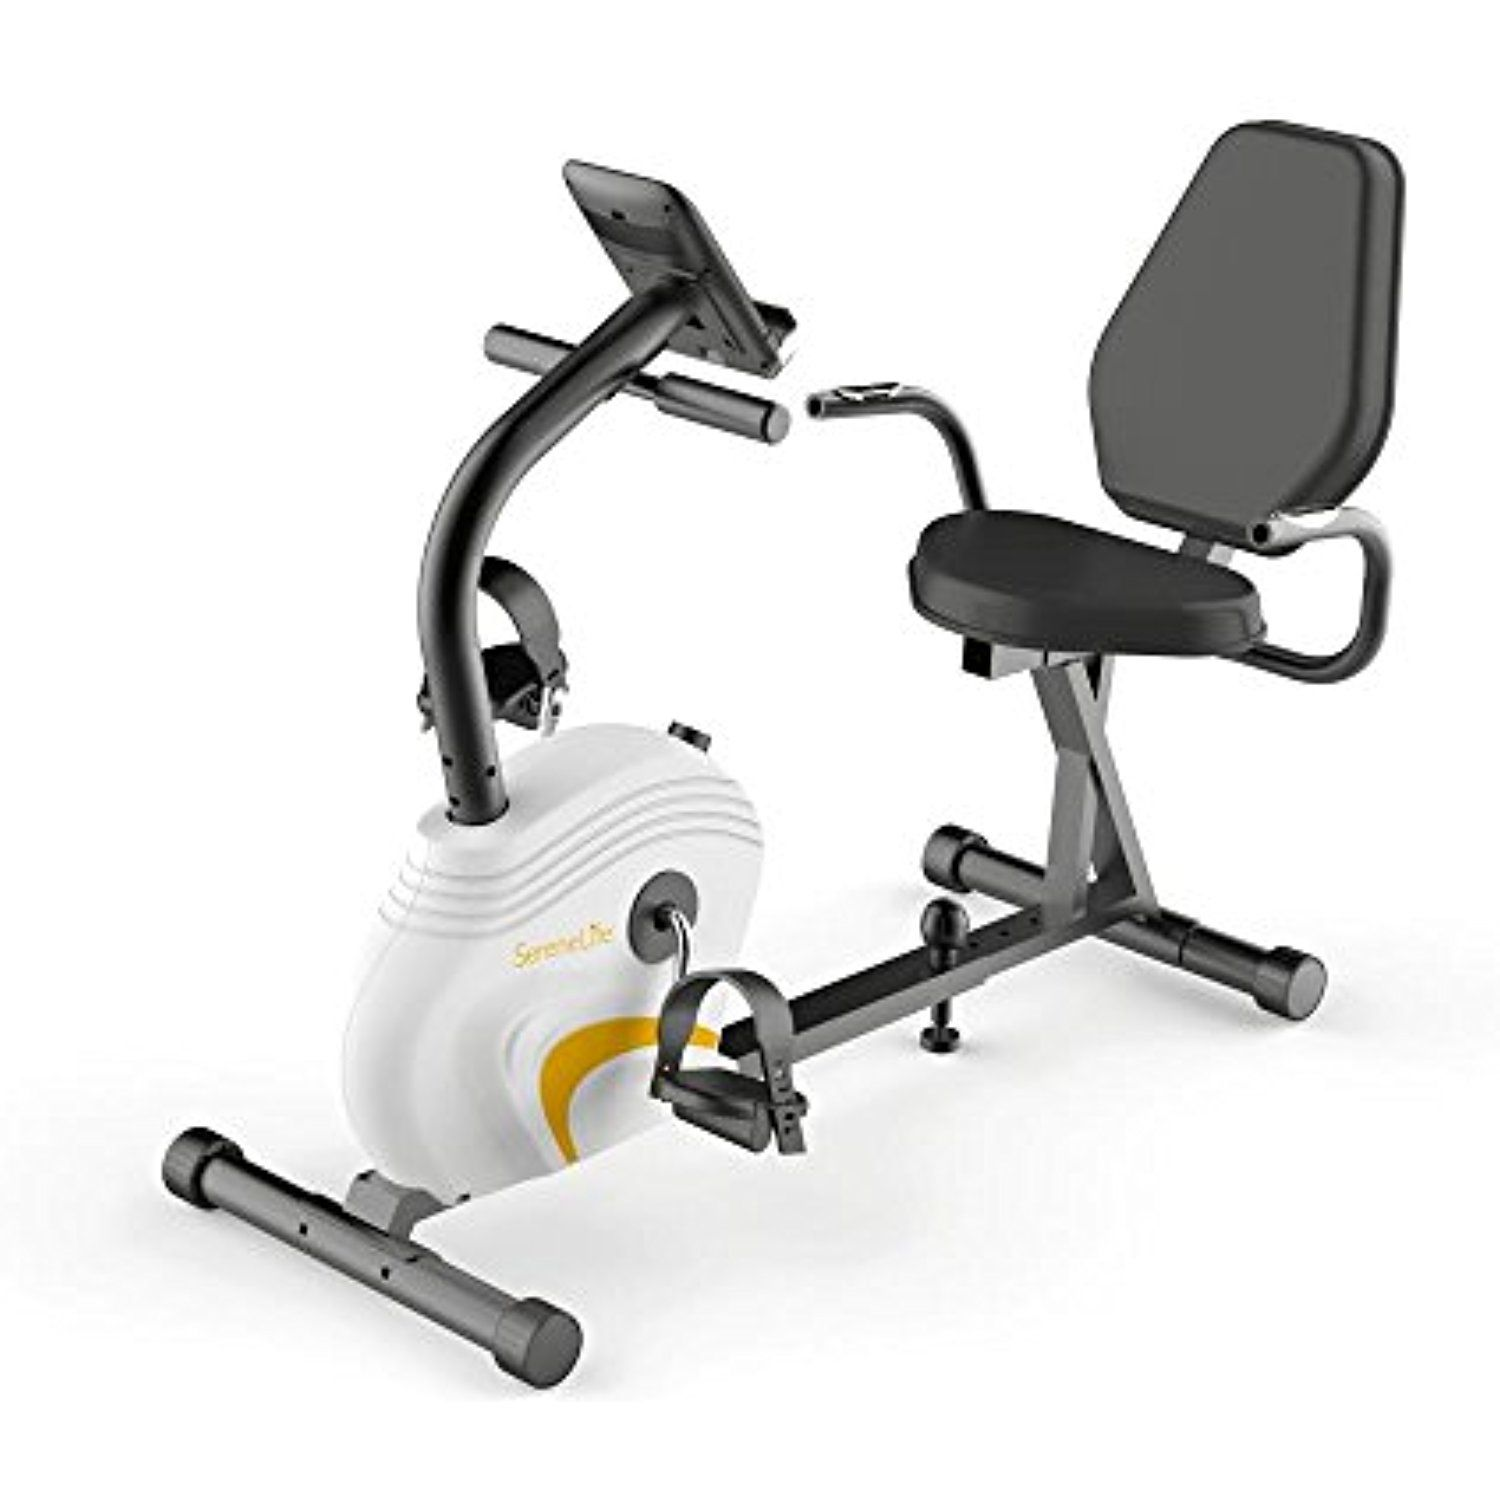 Serenelife Exercise Bike Recumbent Stationary Bicycle Pedal Cycling Trainer Fitness Machine Equipment W Recumbent Bike Workout Bicycle Workout Biking Workout